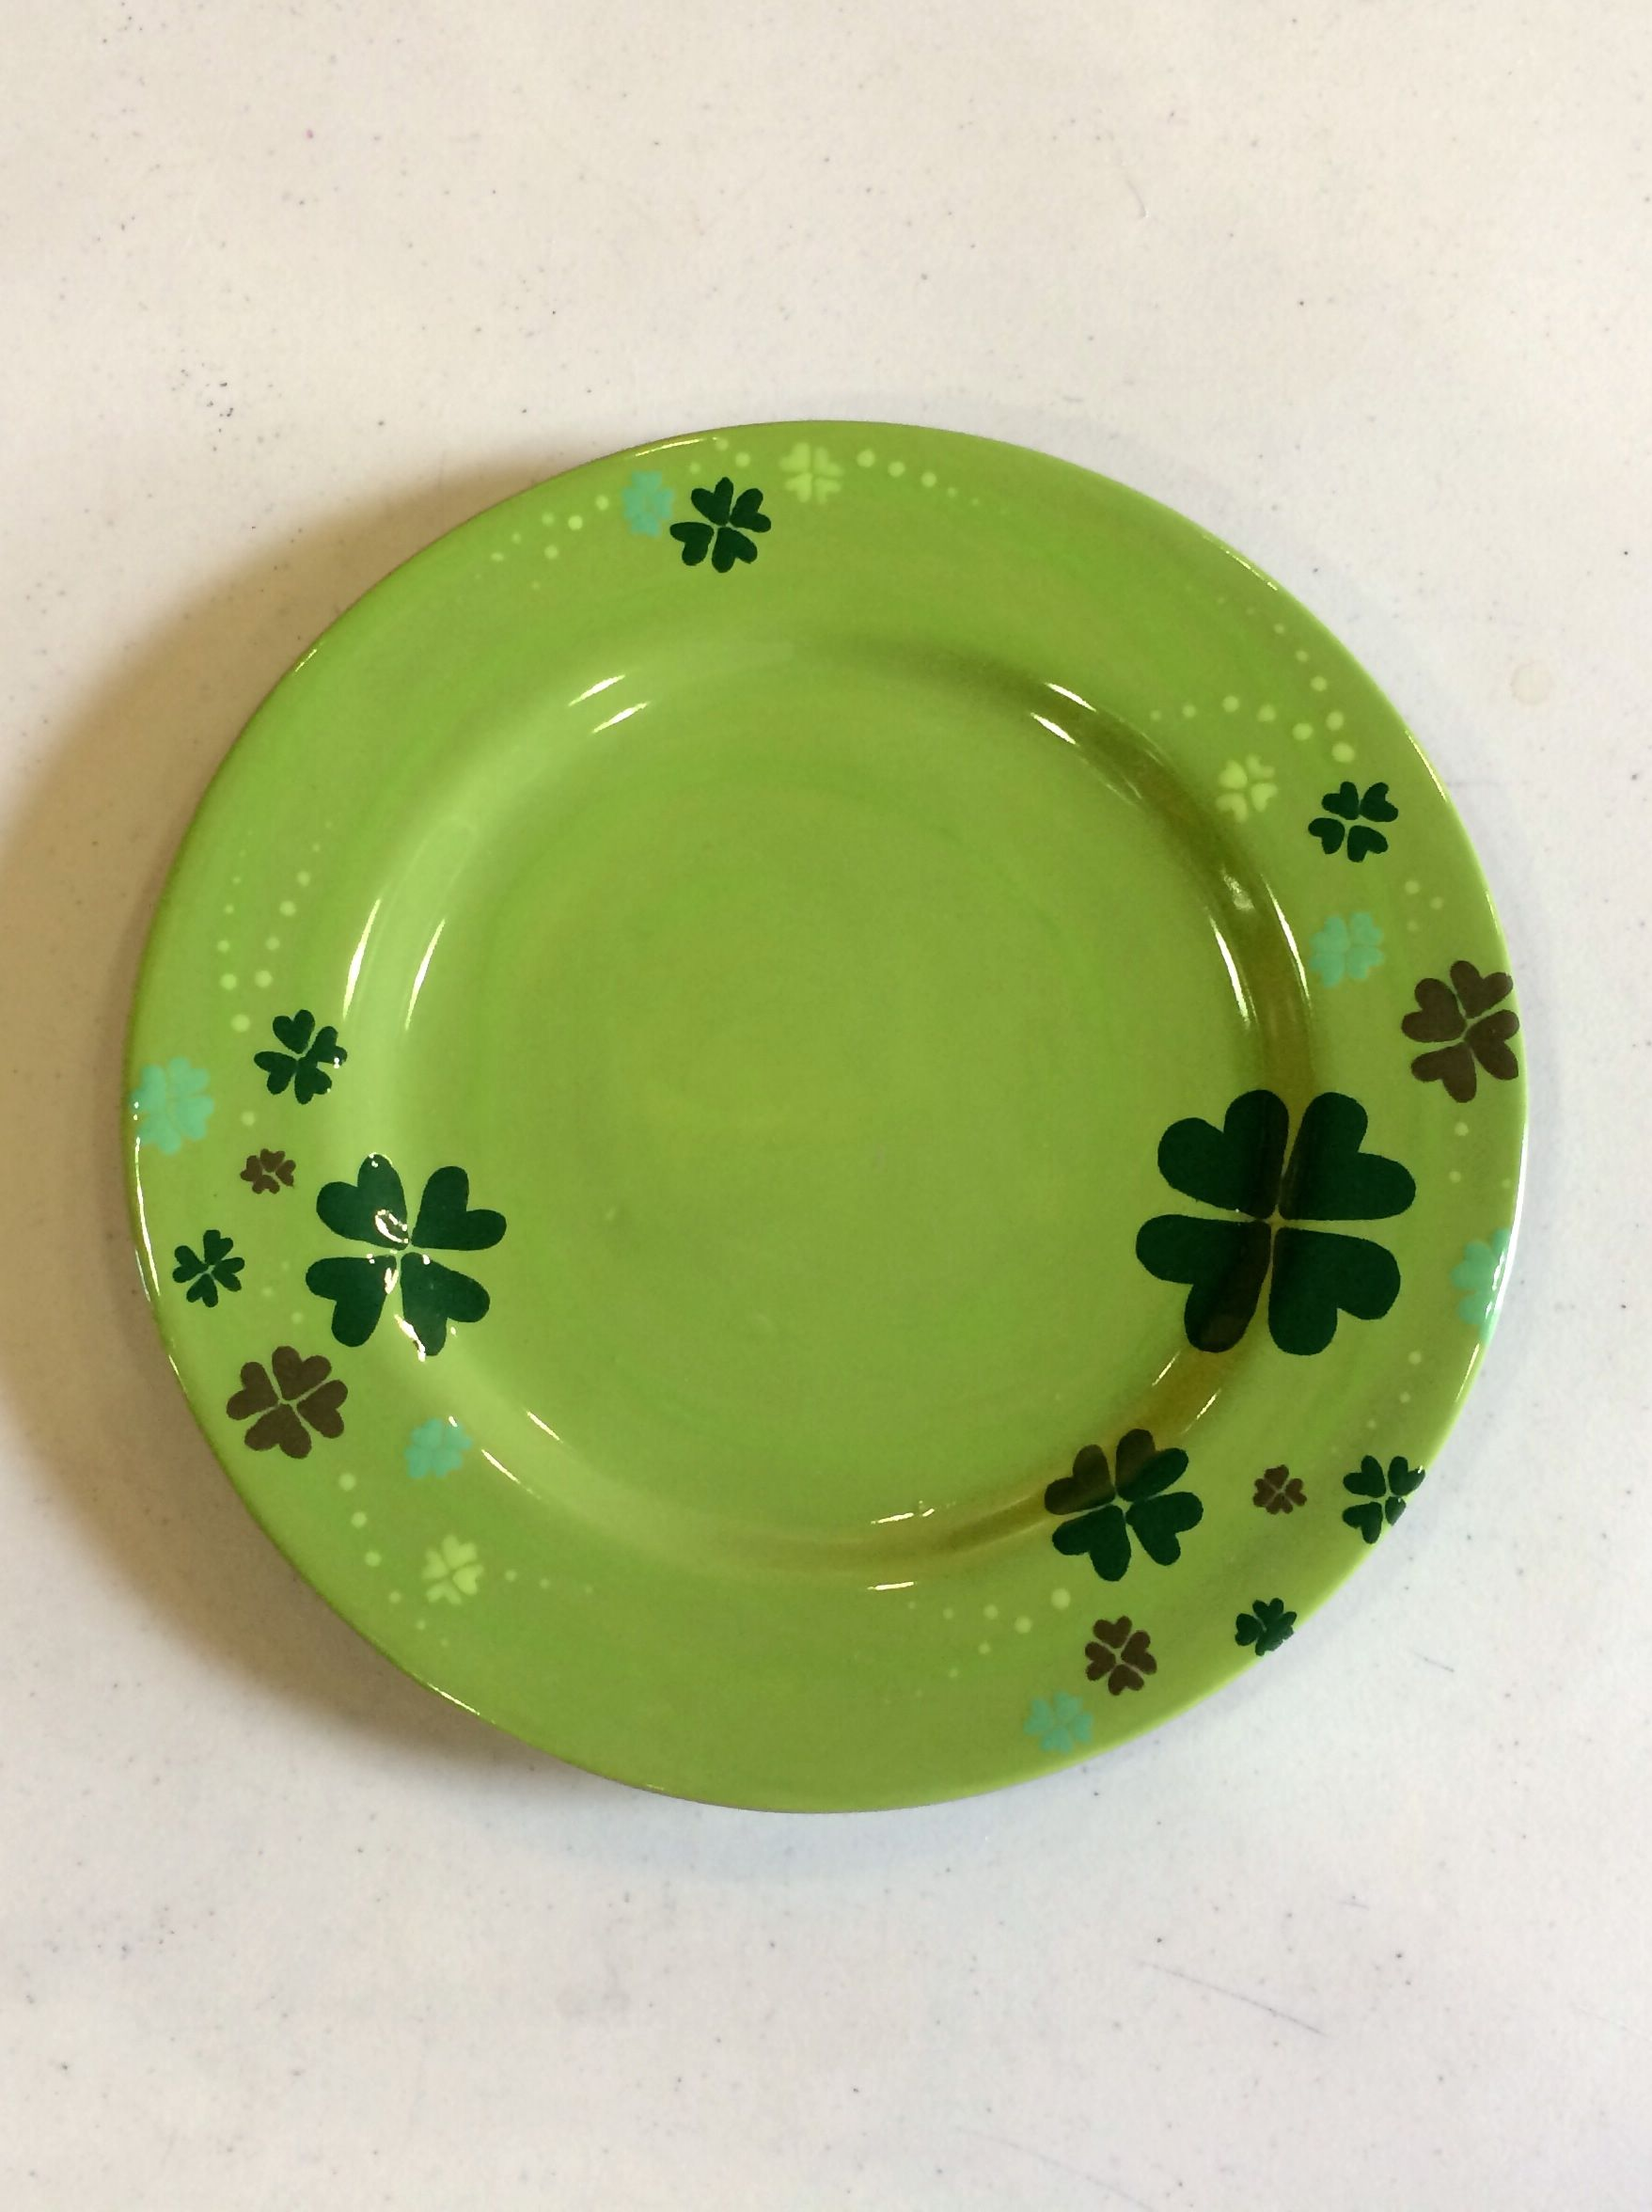 Creativity Art Studio - pick u0026 paint ceramics - Shamrock St. Patricku0027s Day ceramic plate & Creativity Art Studio - pick u0026 paint ceramics - Shamrock St ...